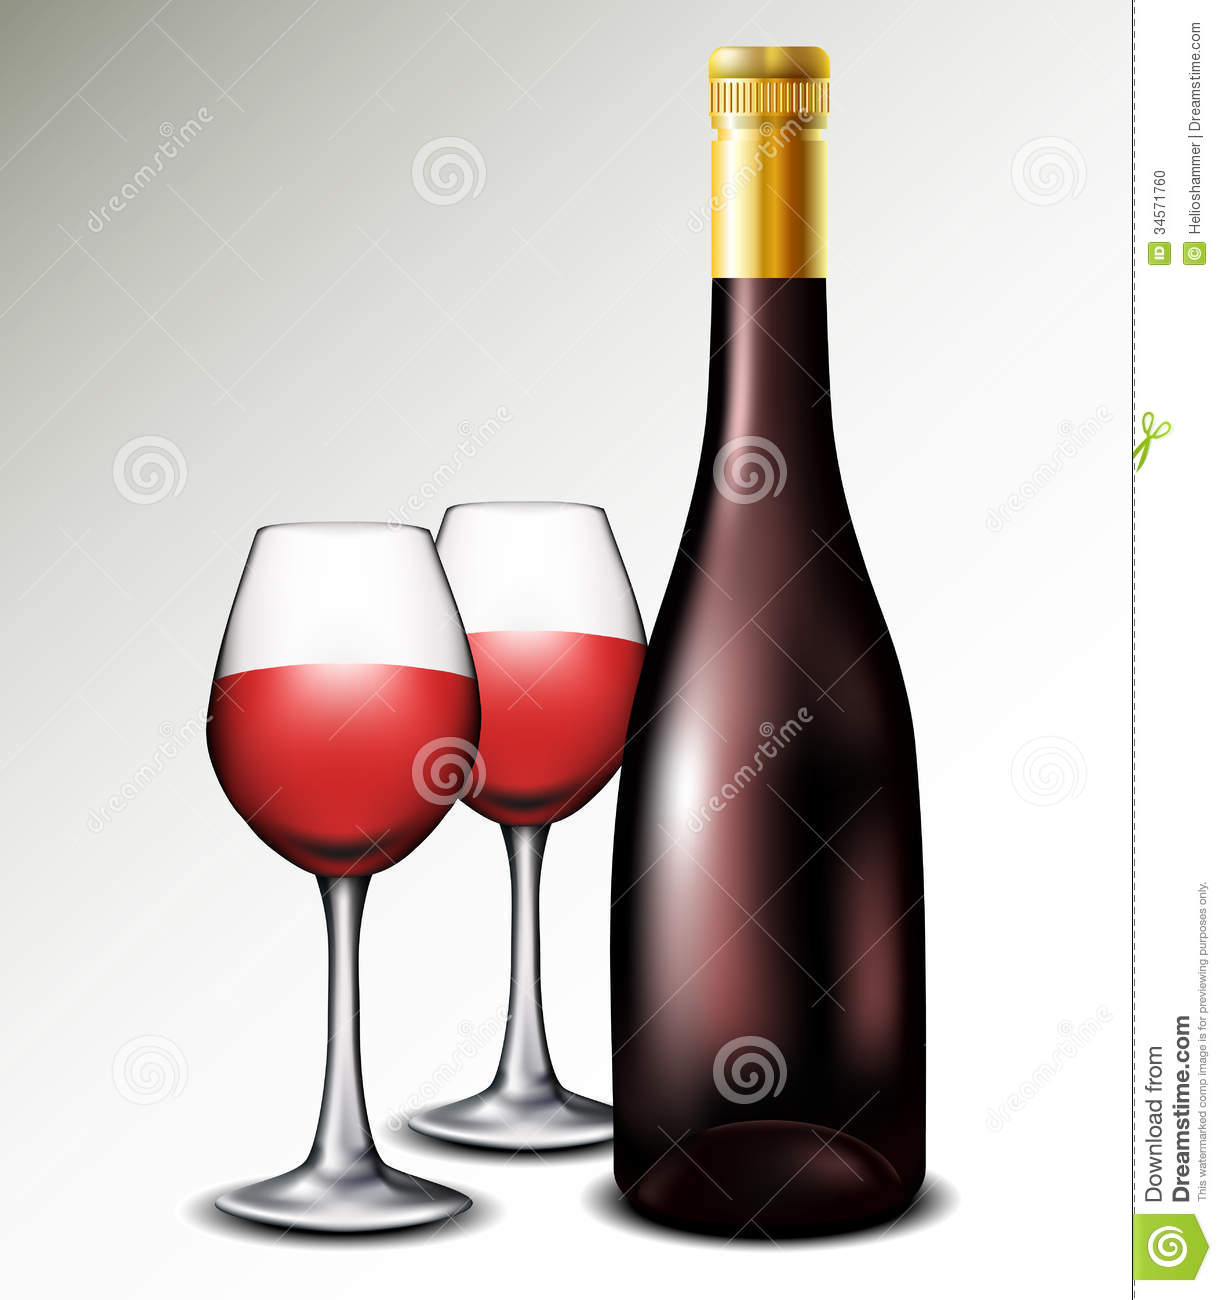 wine bottle with glasses stock photo image of object 34571760. Black Bedroom Furniture Sets. Home Design Ideas